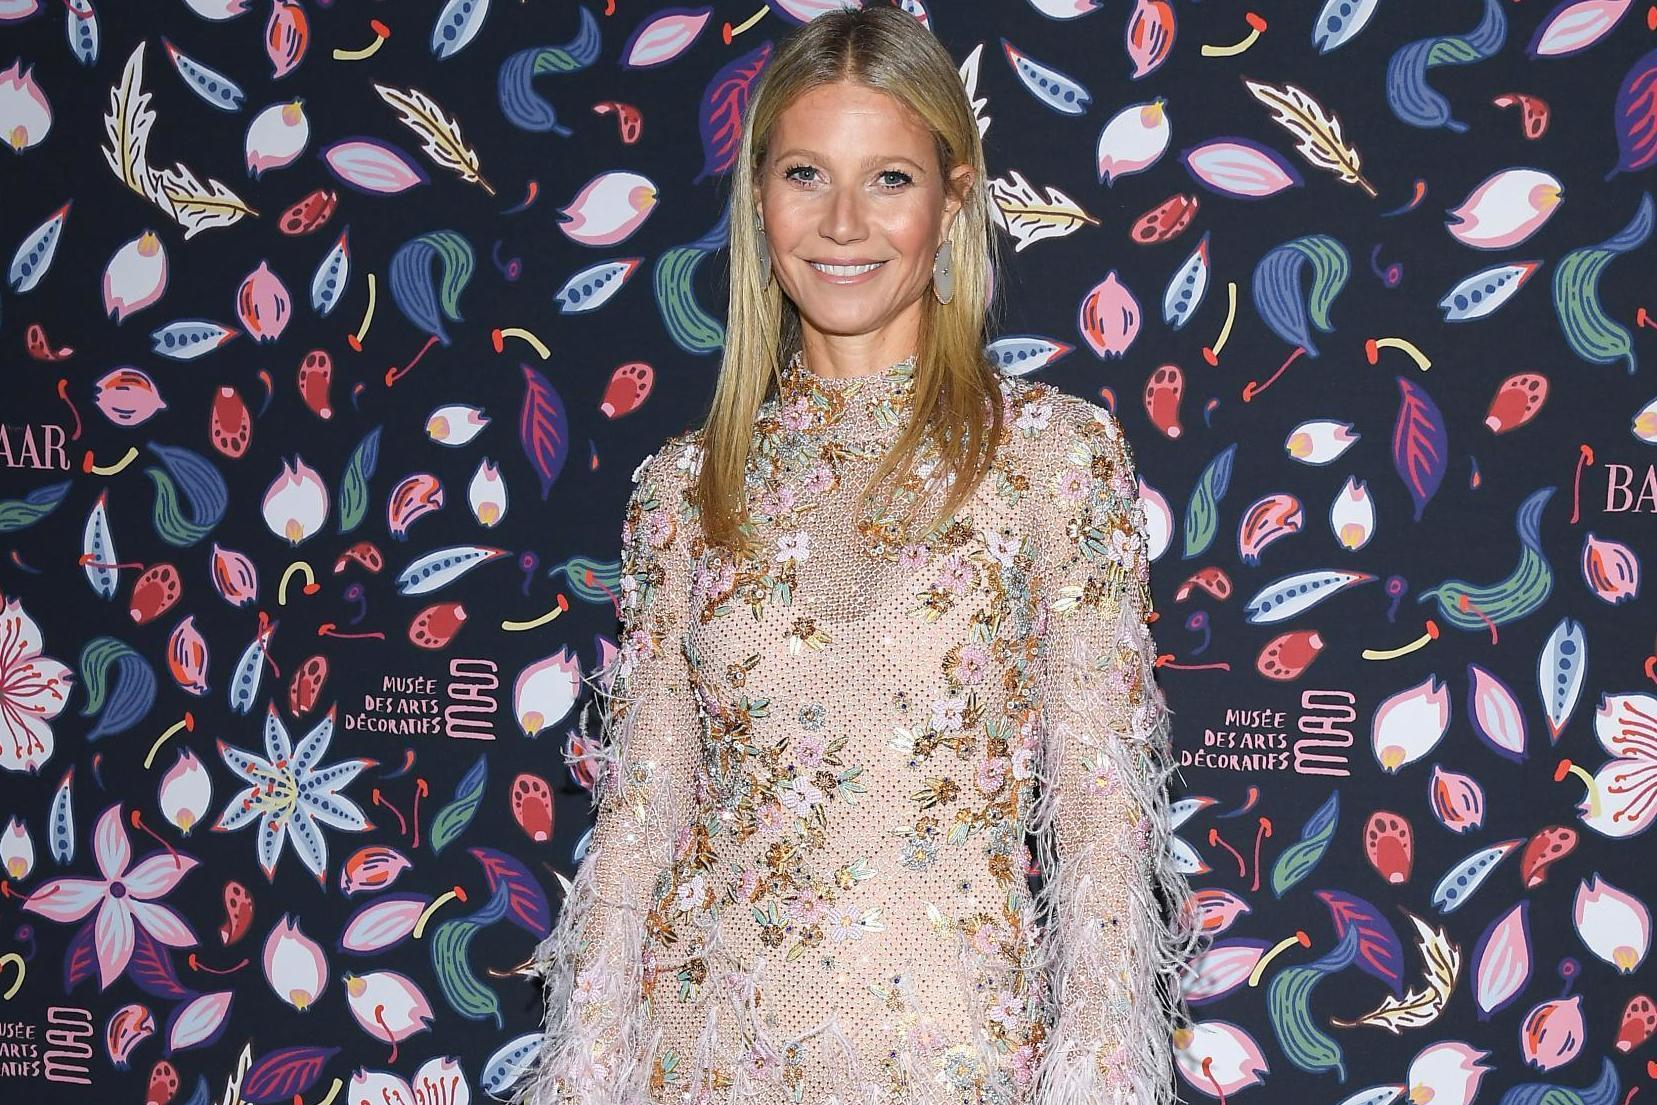 Gwyneth Paltrow explains how father's cancer battle led to Goop launch